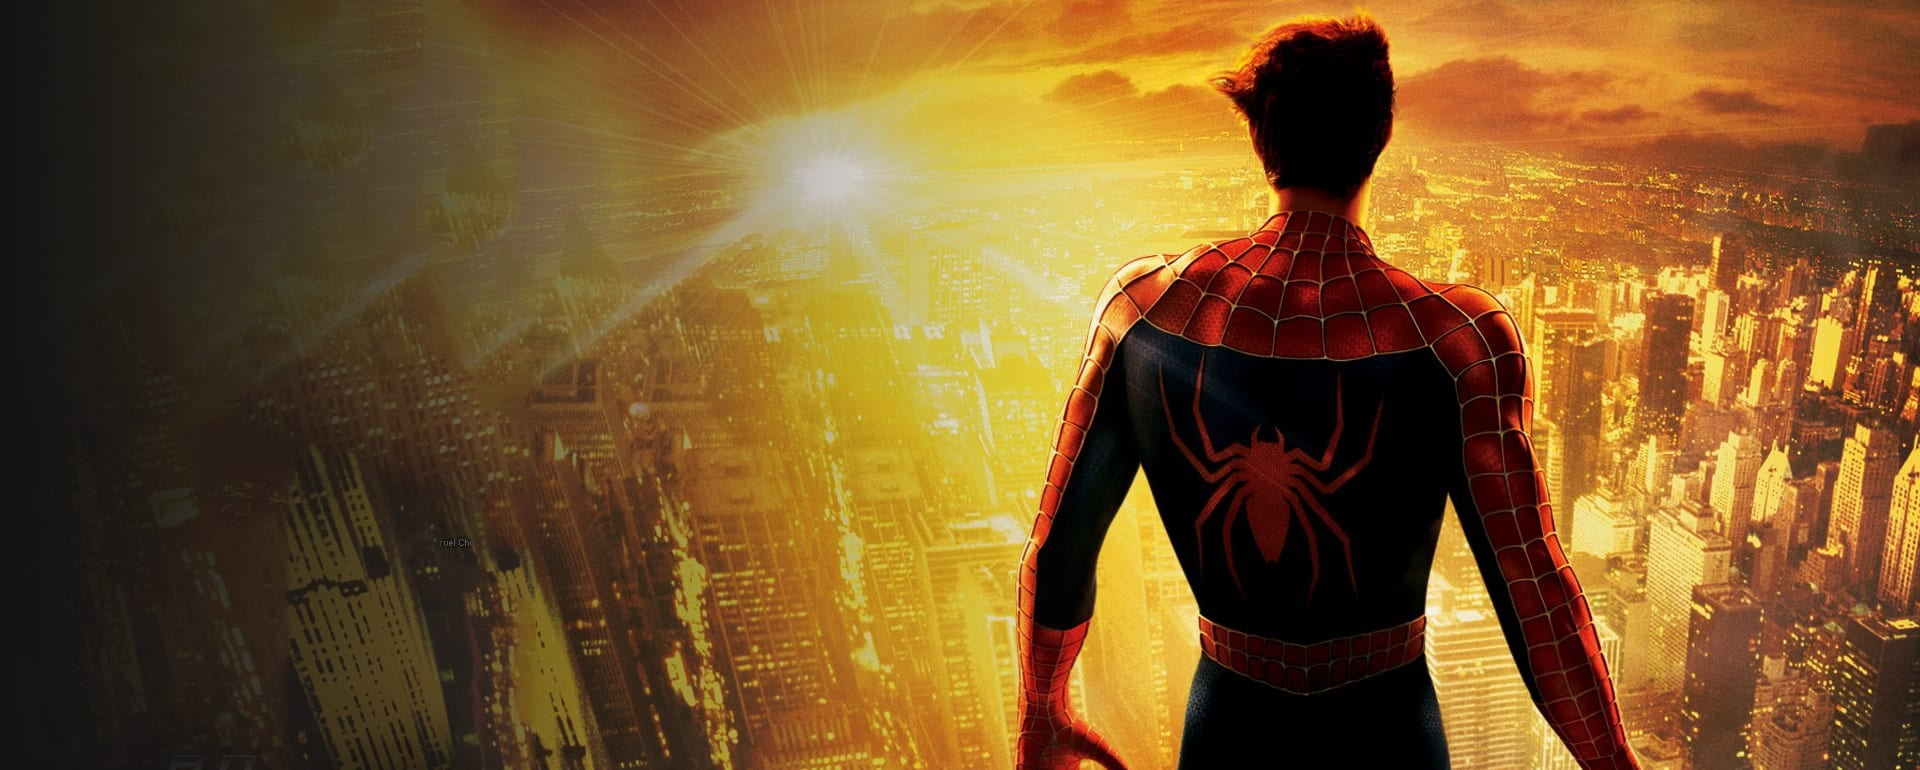 Spiderman Homecoming Free 123movies: Spider Man 2 Full Movie English